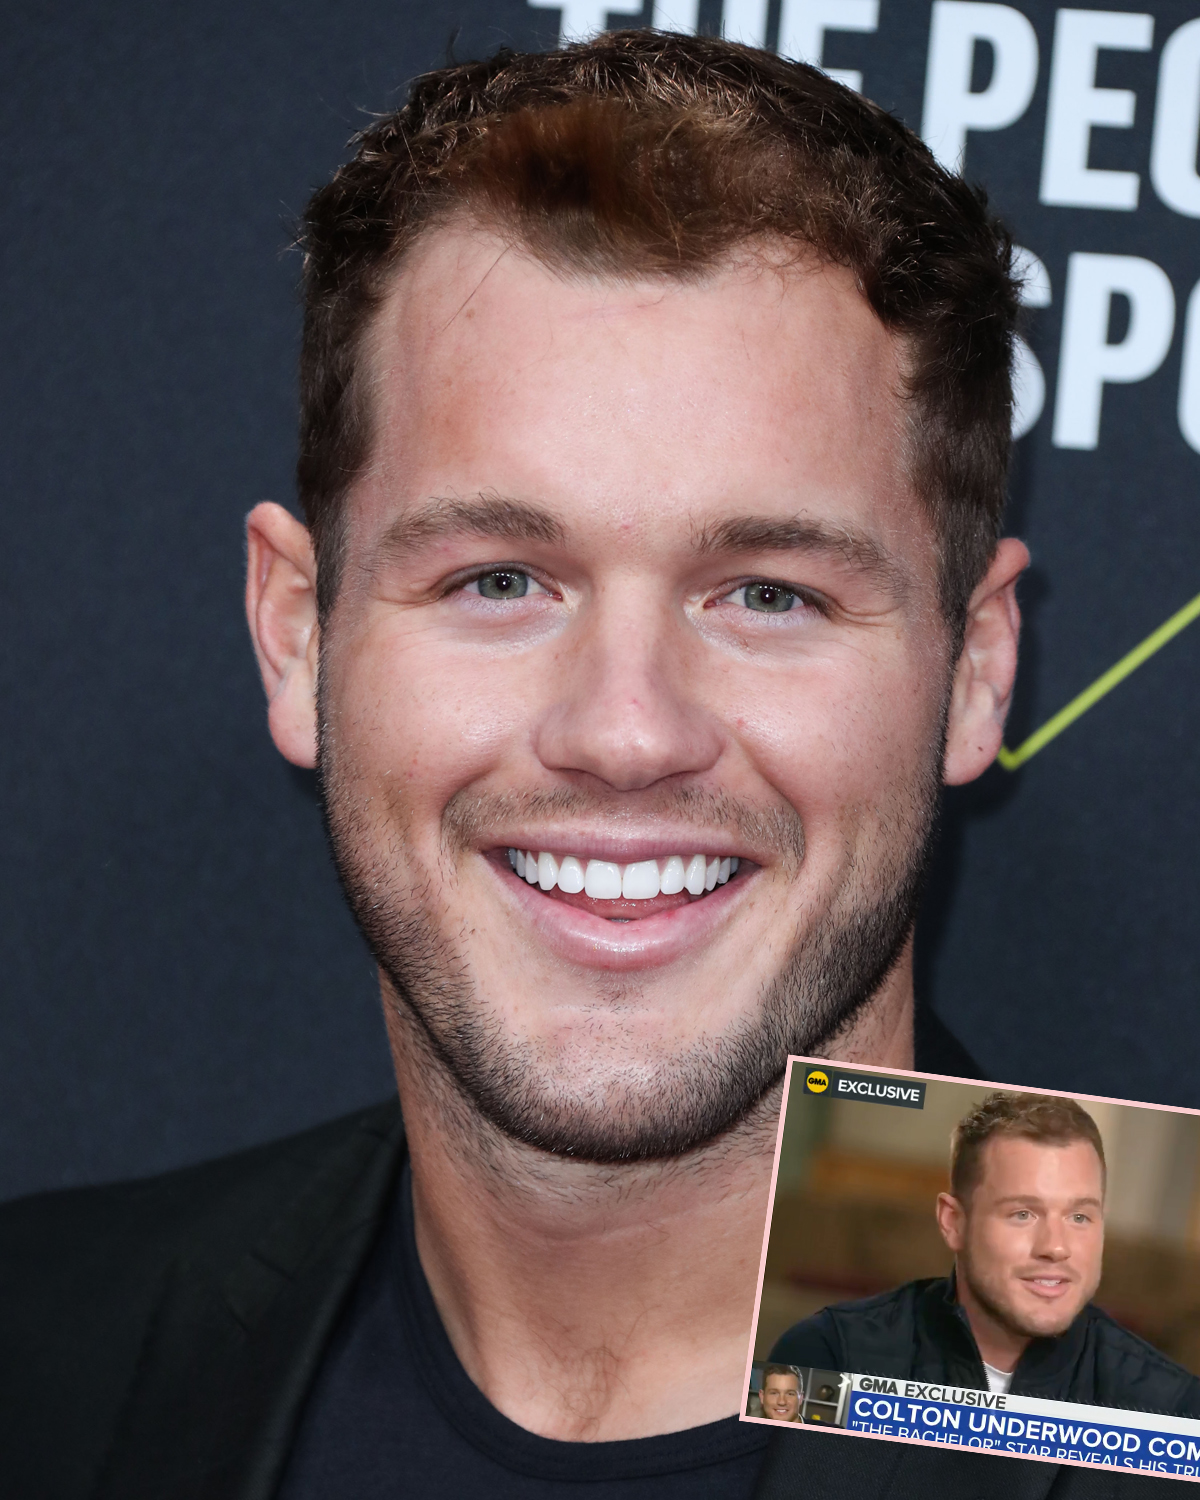 Former Bachelor Colton Underwood Comes Out As Gay